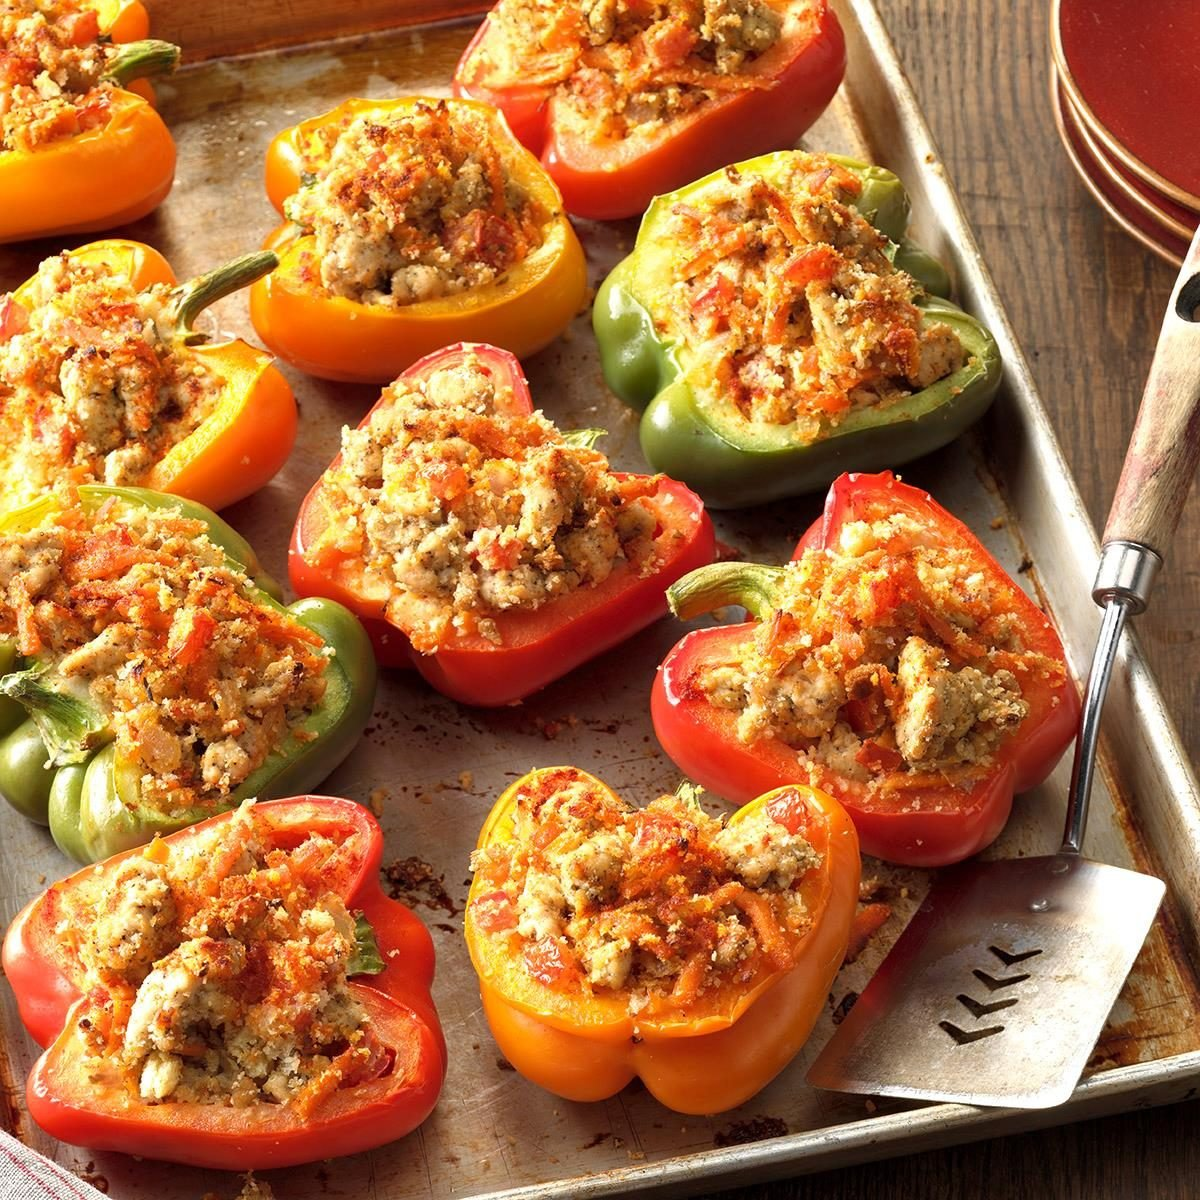 Stuff To Make With Ground Beef: Turkey-Stuffed Bell Peppers Recipe